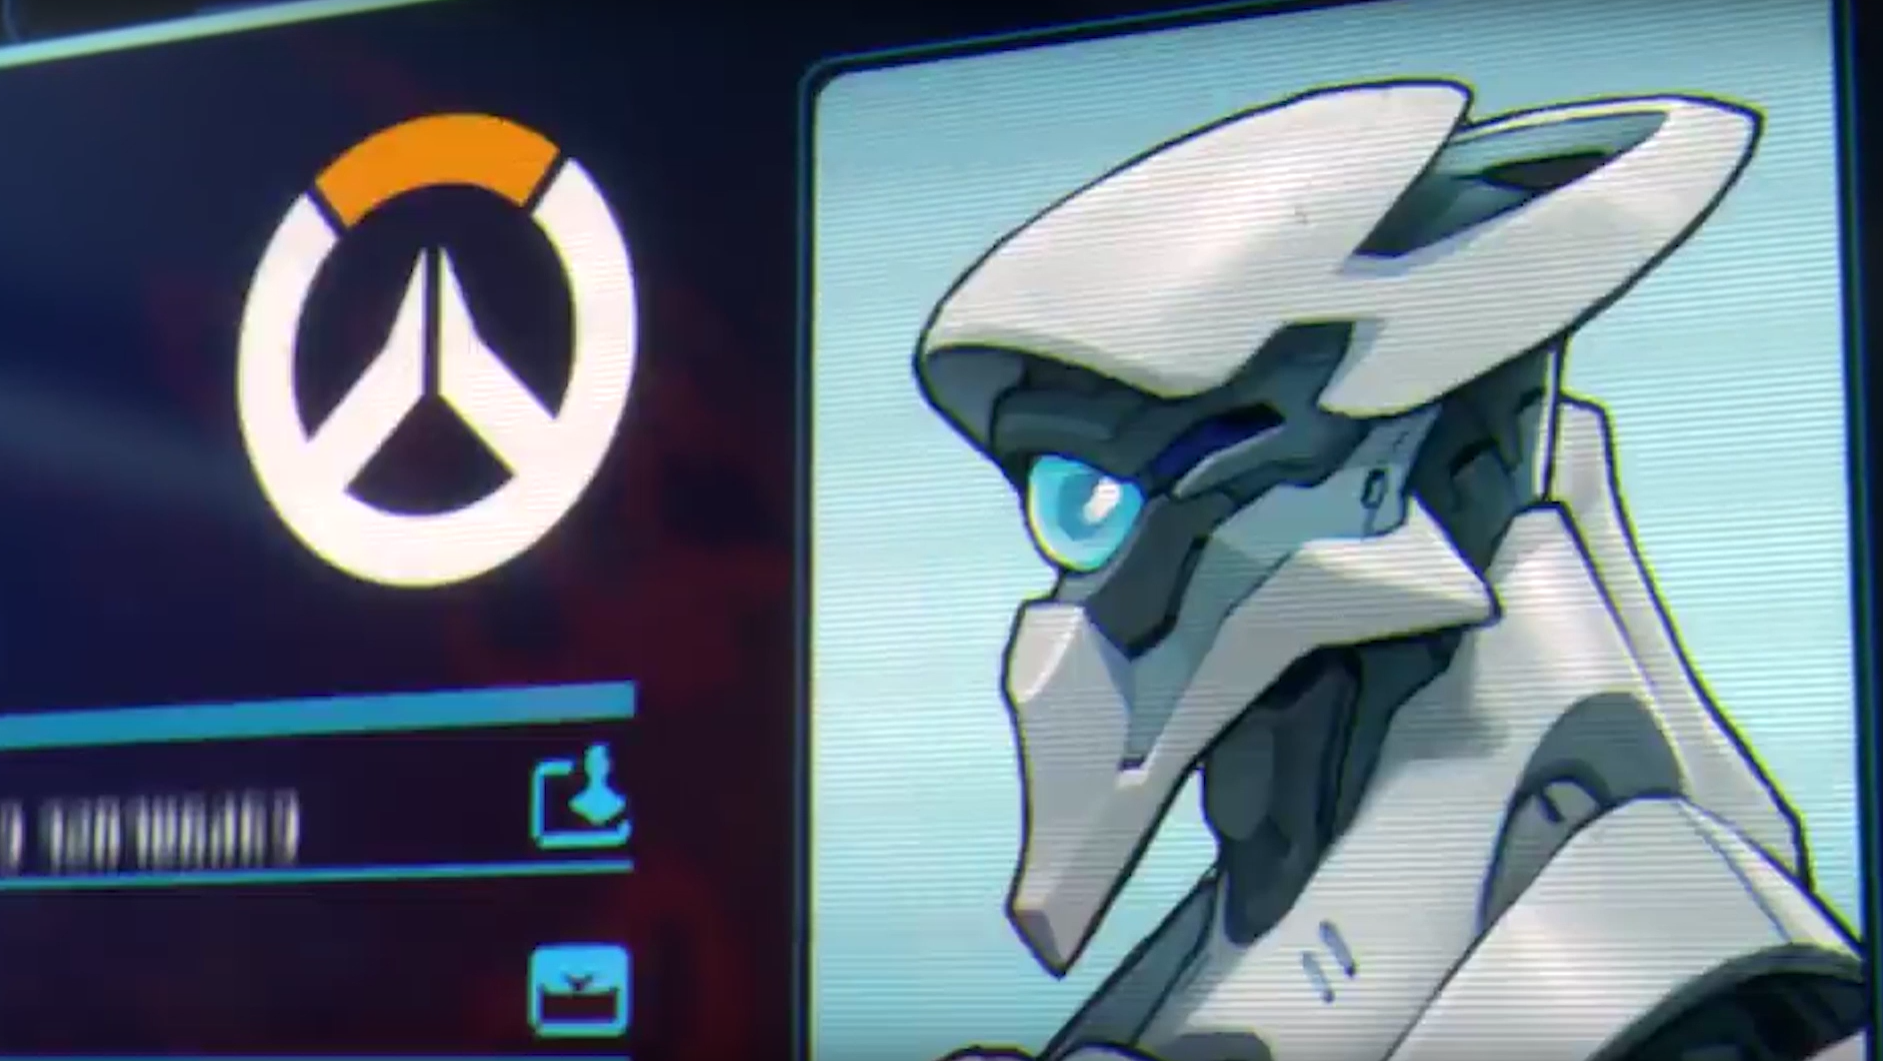 Could Athena Be an Upcoming Overwatch Hero? - News - Gamepedia